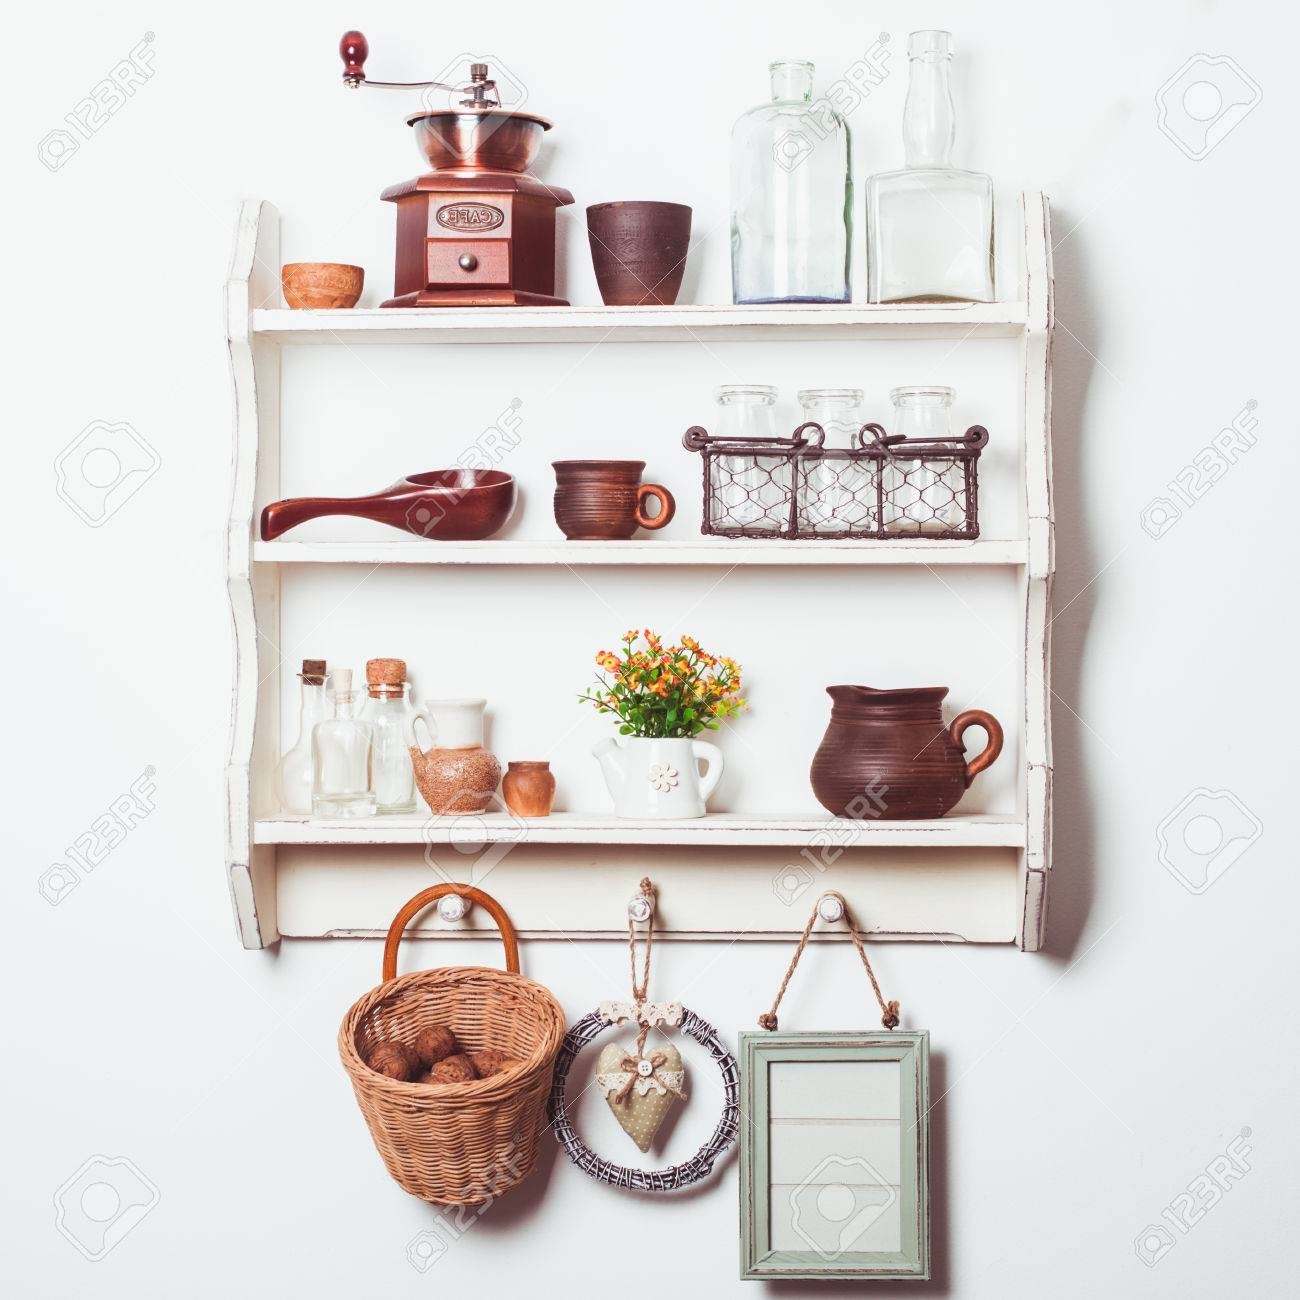 Full Size of Shelves In Rustic Style Küche Regal Küche